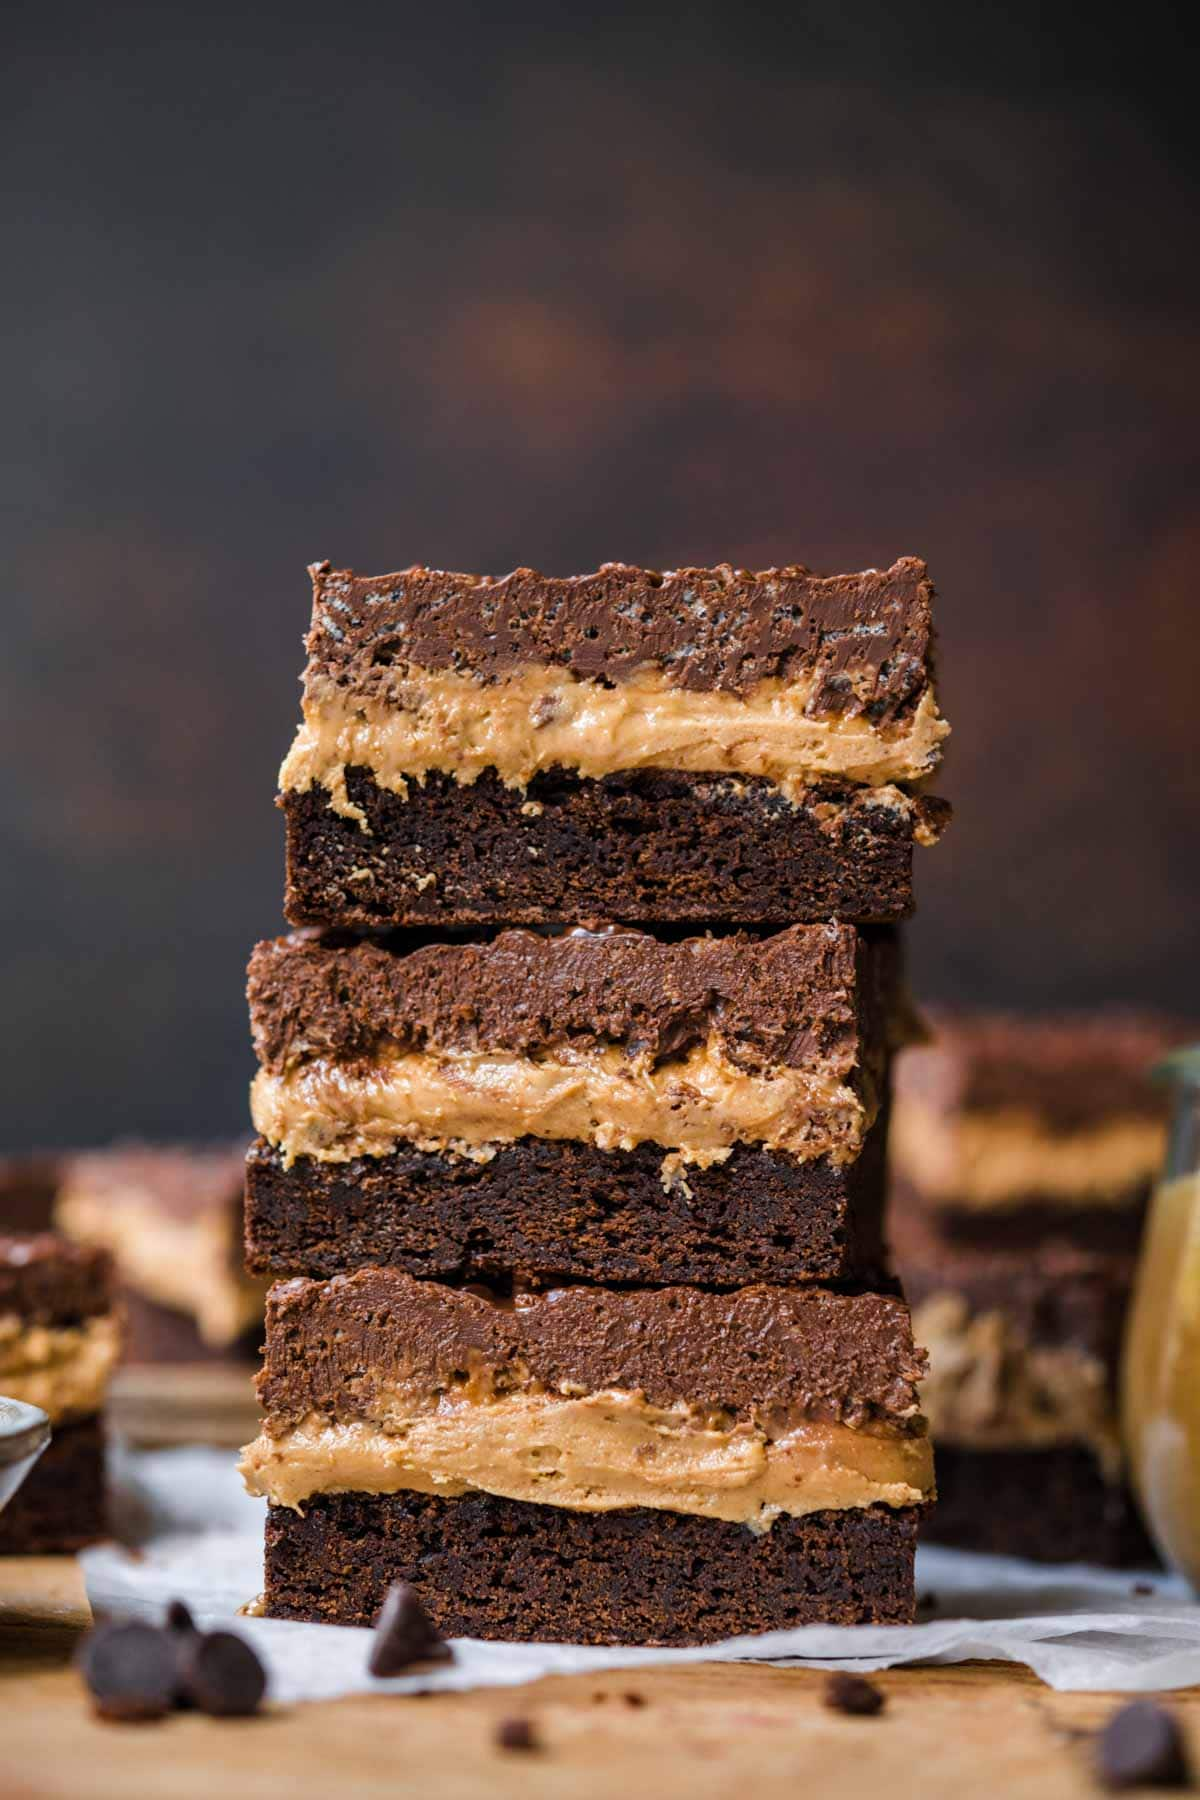 Stacked Crispy Chocolate Peanut Butter Brownie Bars on cutting board